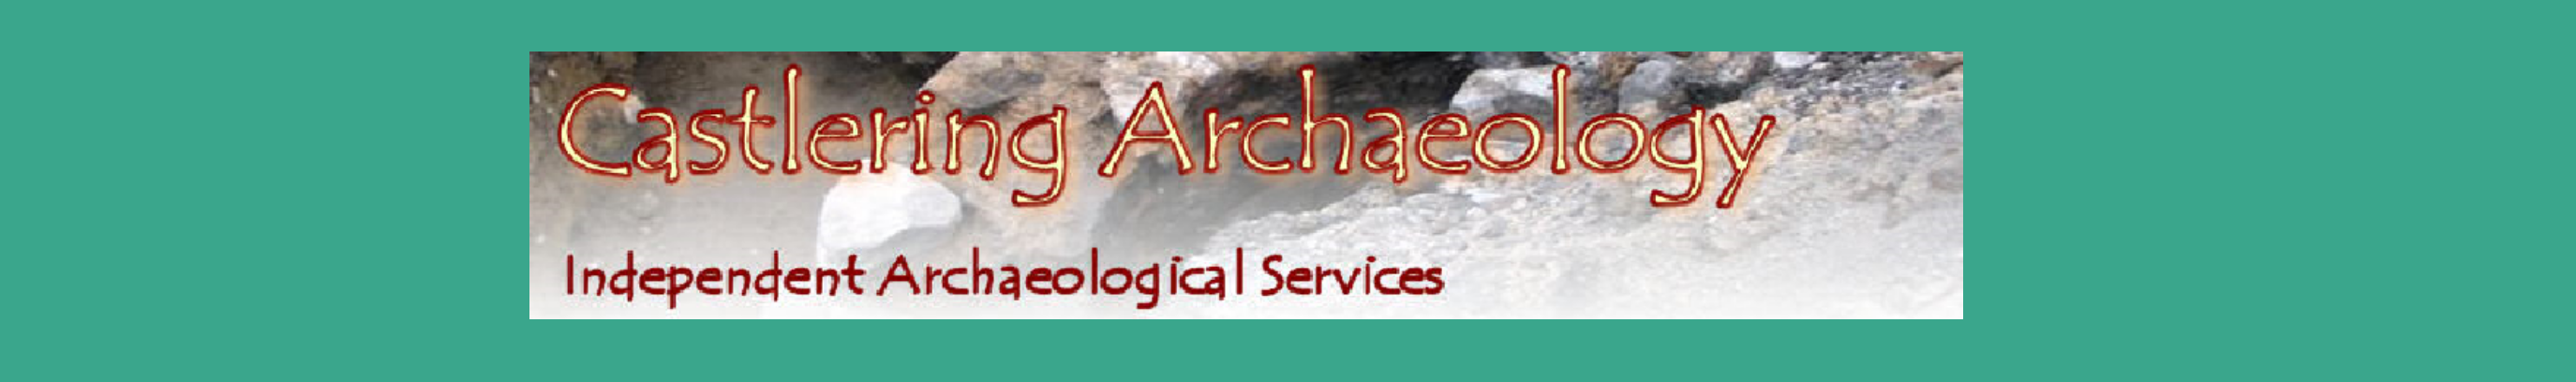 Castlering Archaeology